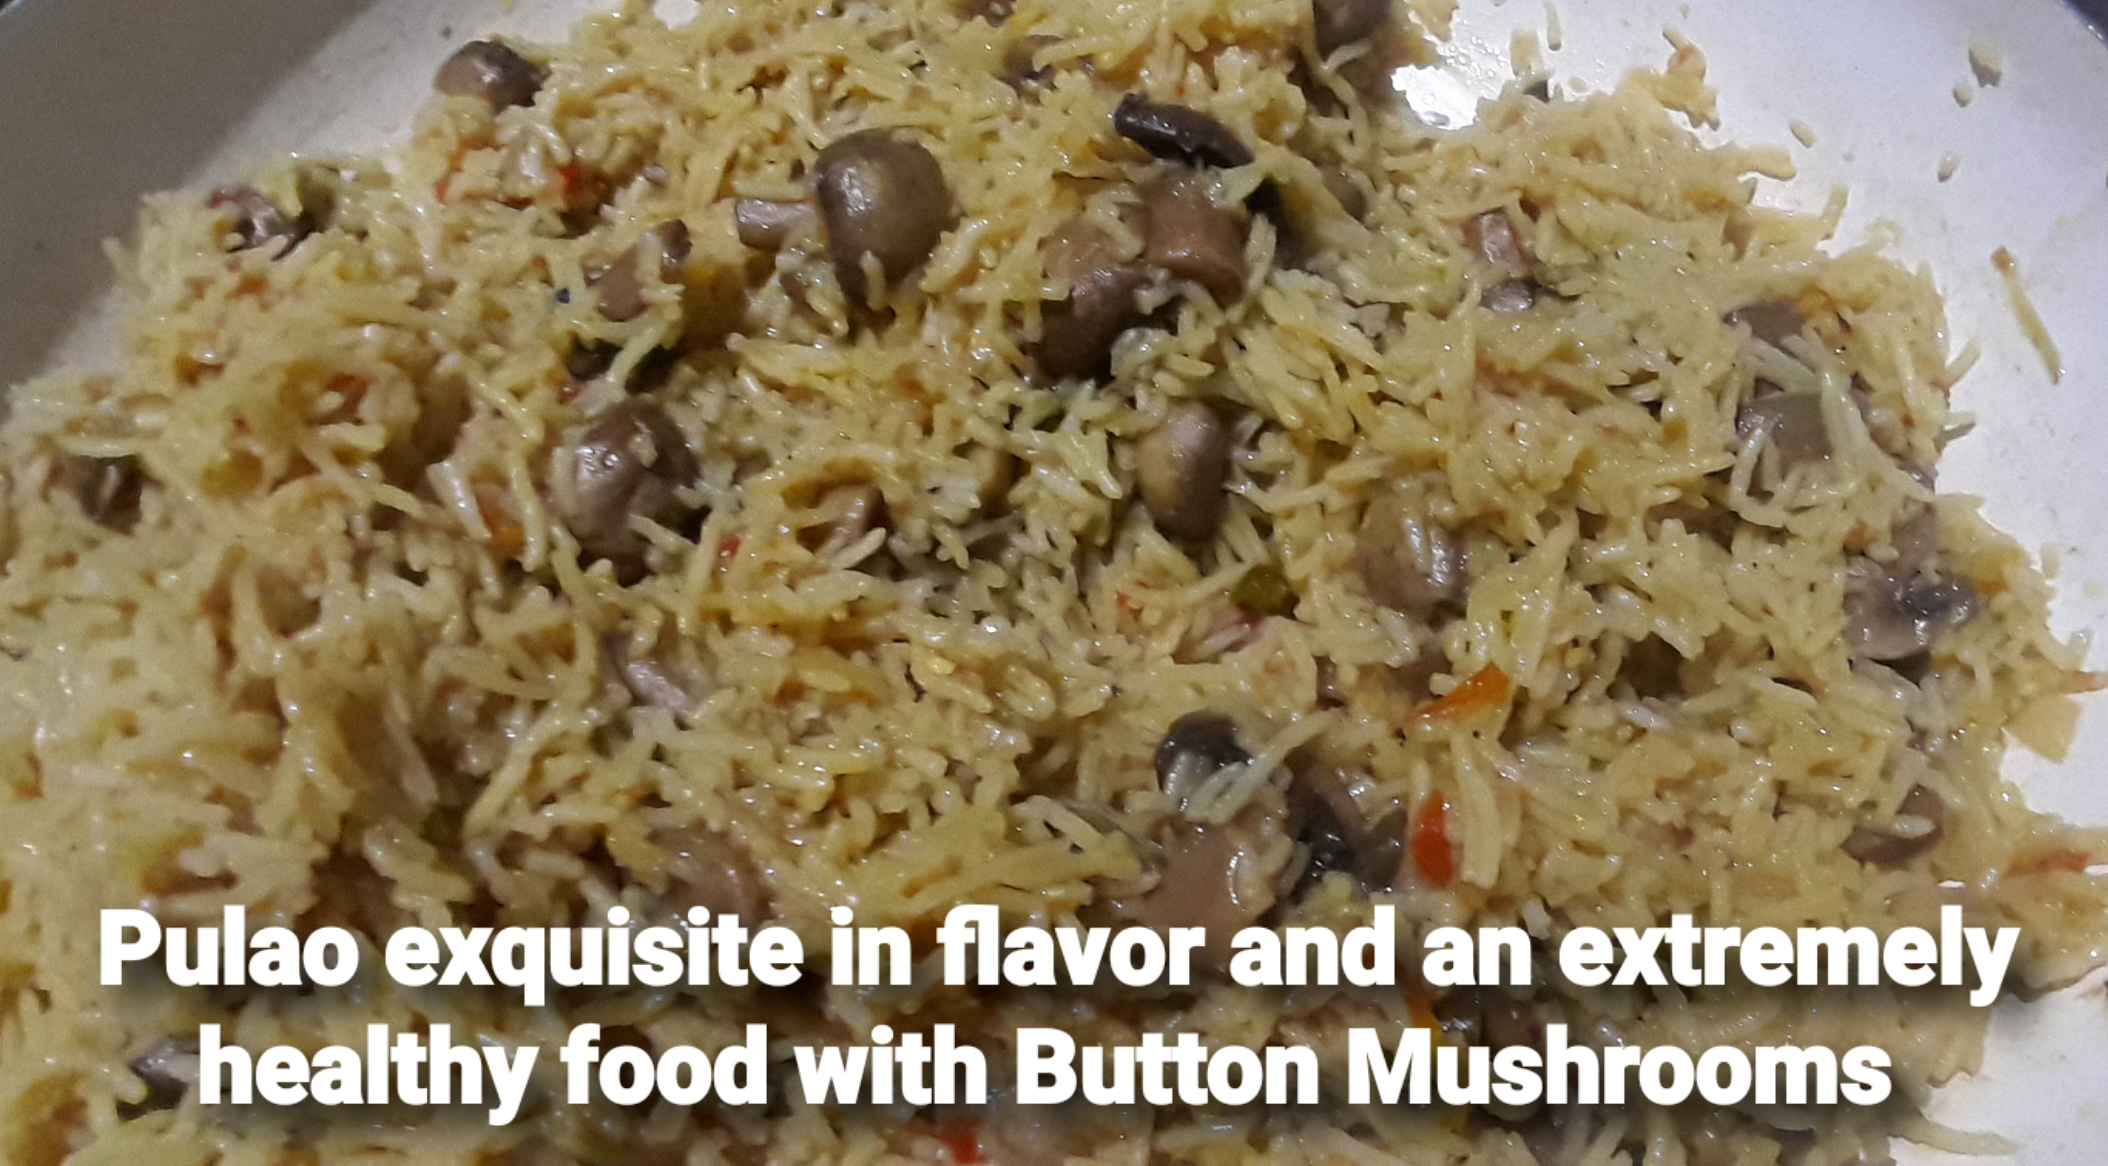 Pulao exquisite in flavor and an extremely healthy food